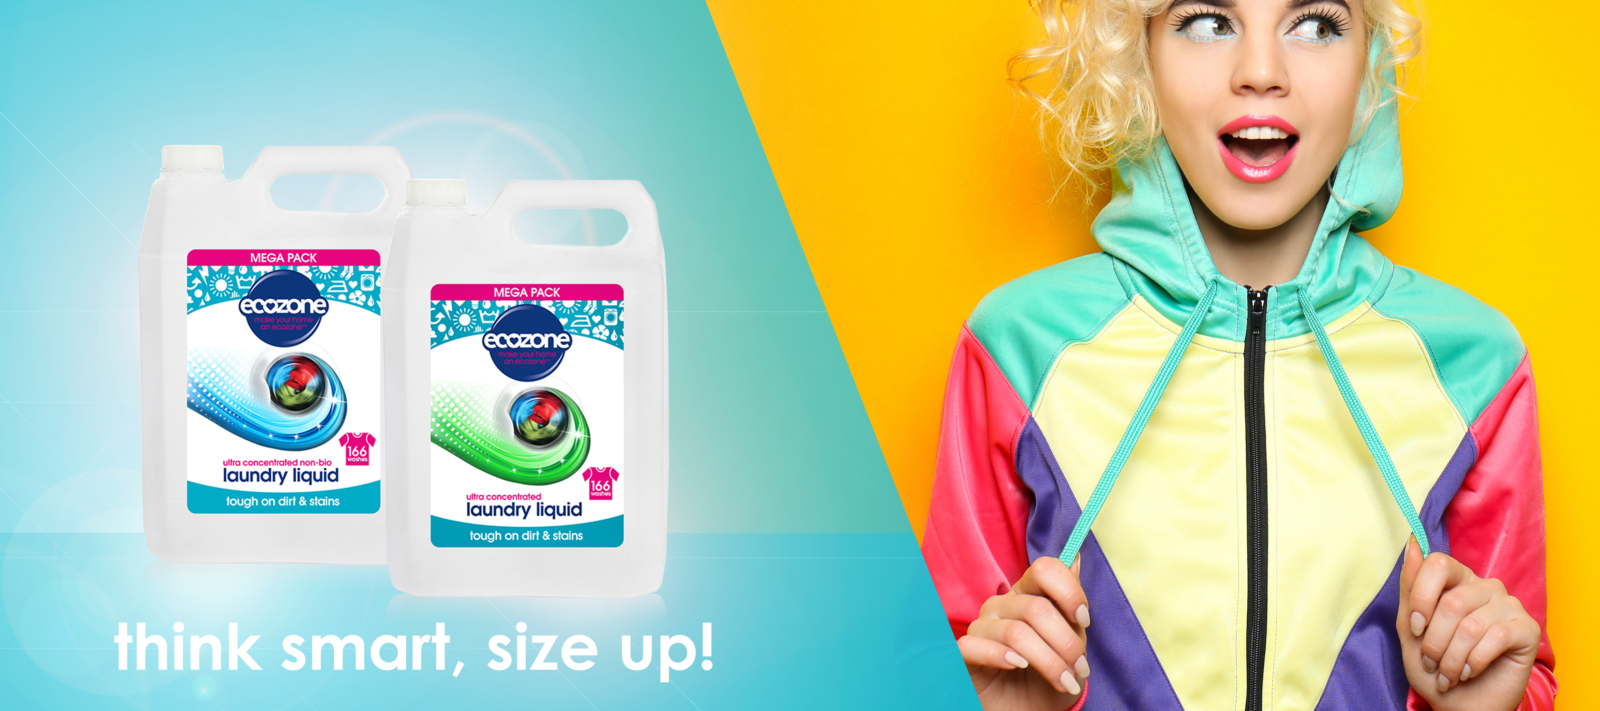 OFFICIAL home of Ecozone laundry liquids